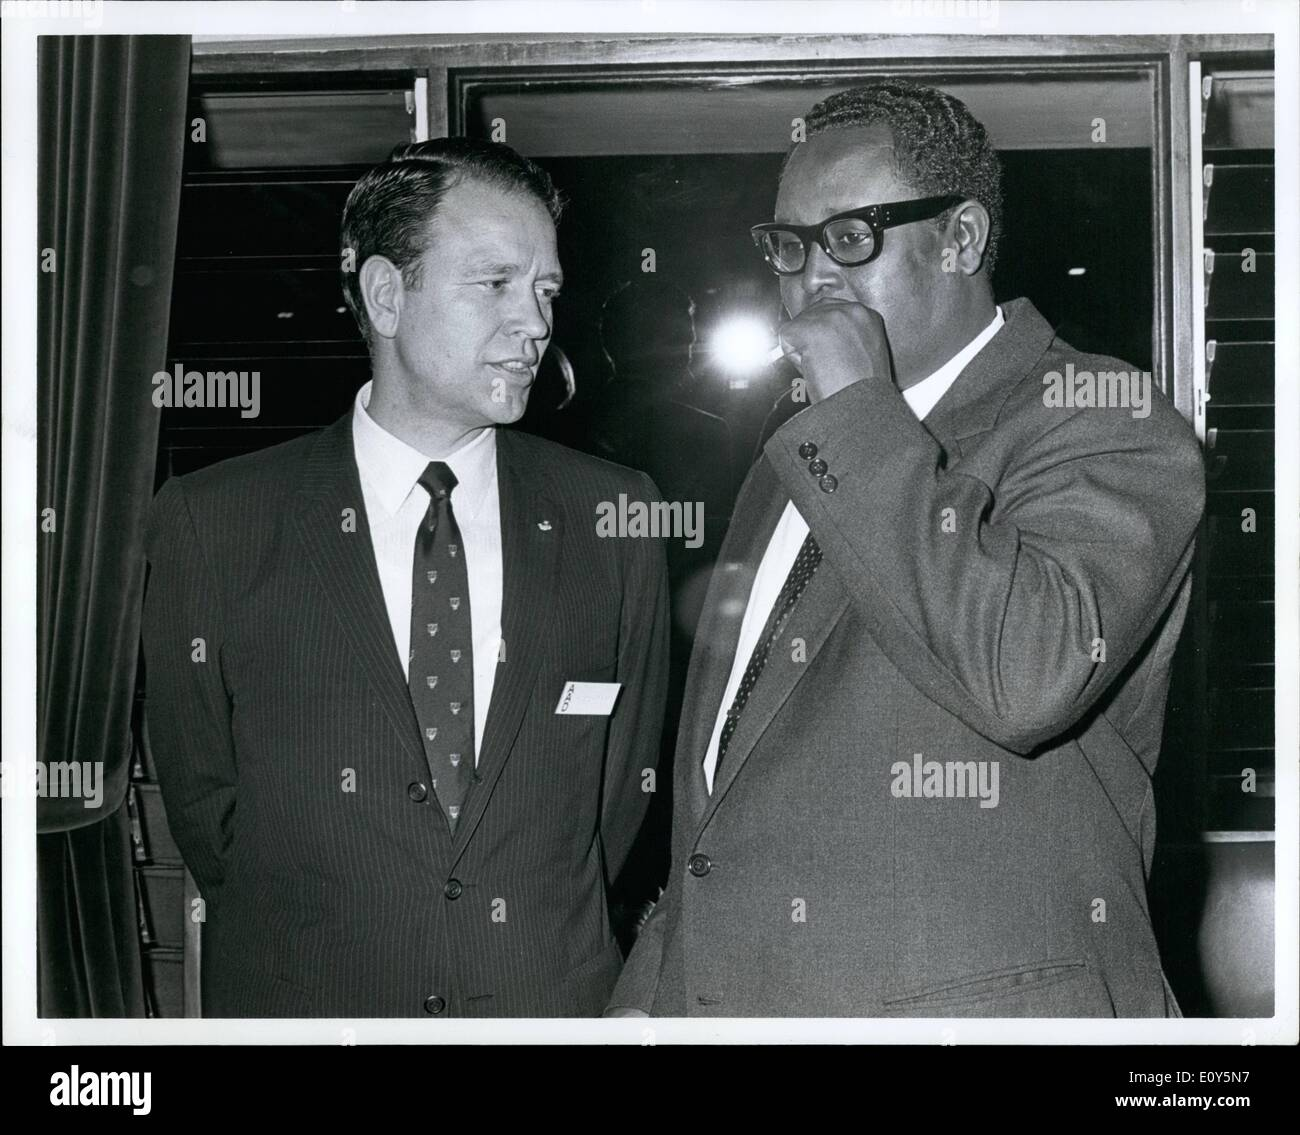 Nov. 11, 1968 - Afro-American Institute President Waldemar Nielsen and Ibrahim Egal, Prime Minister of Somalia at a party by the Kenya Government. - Stock Image